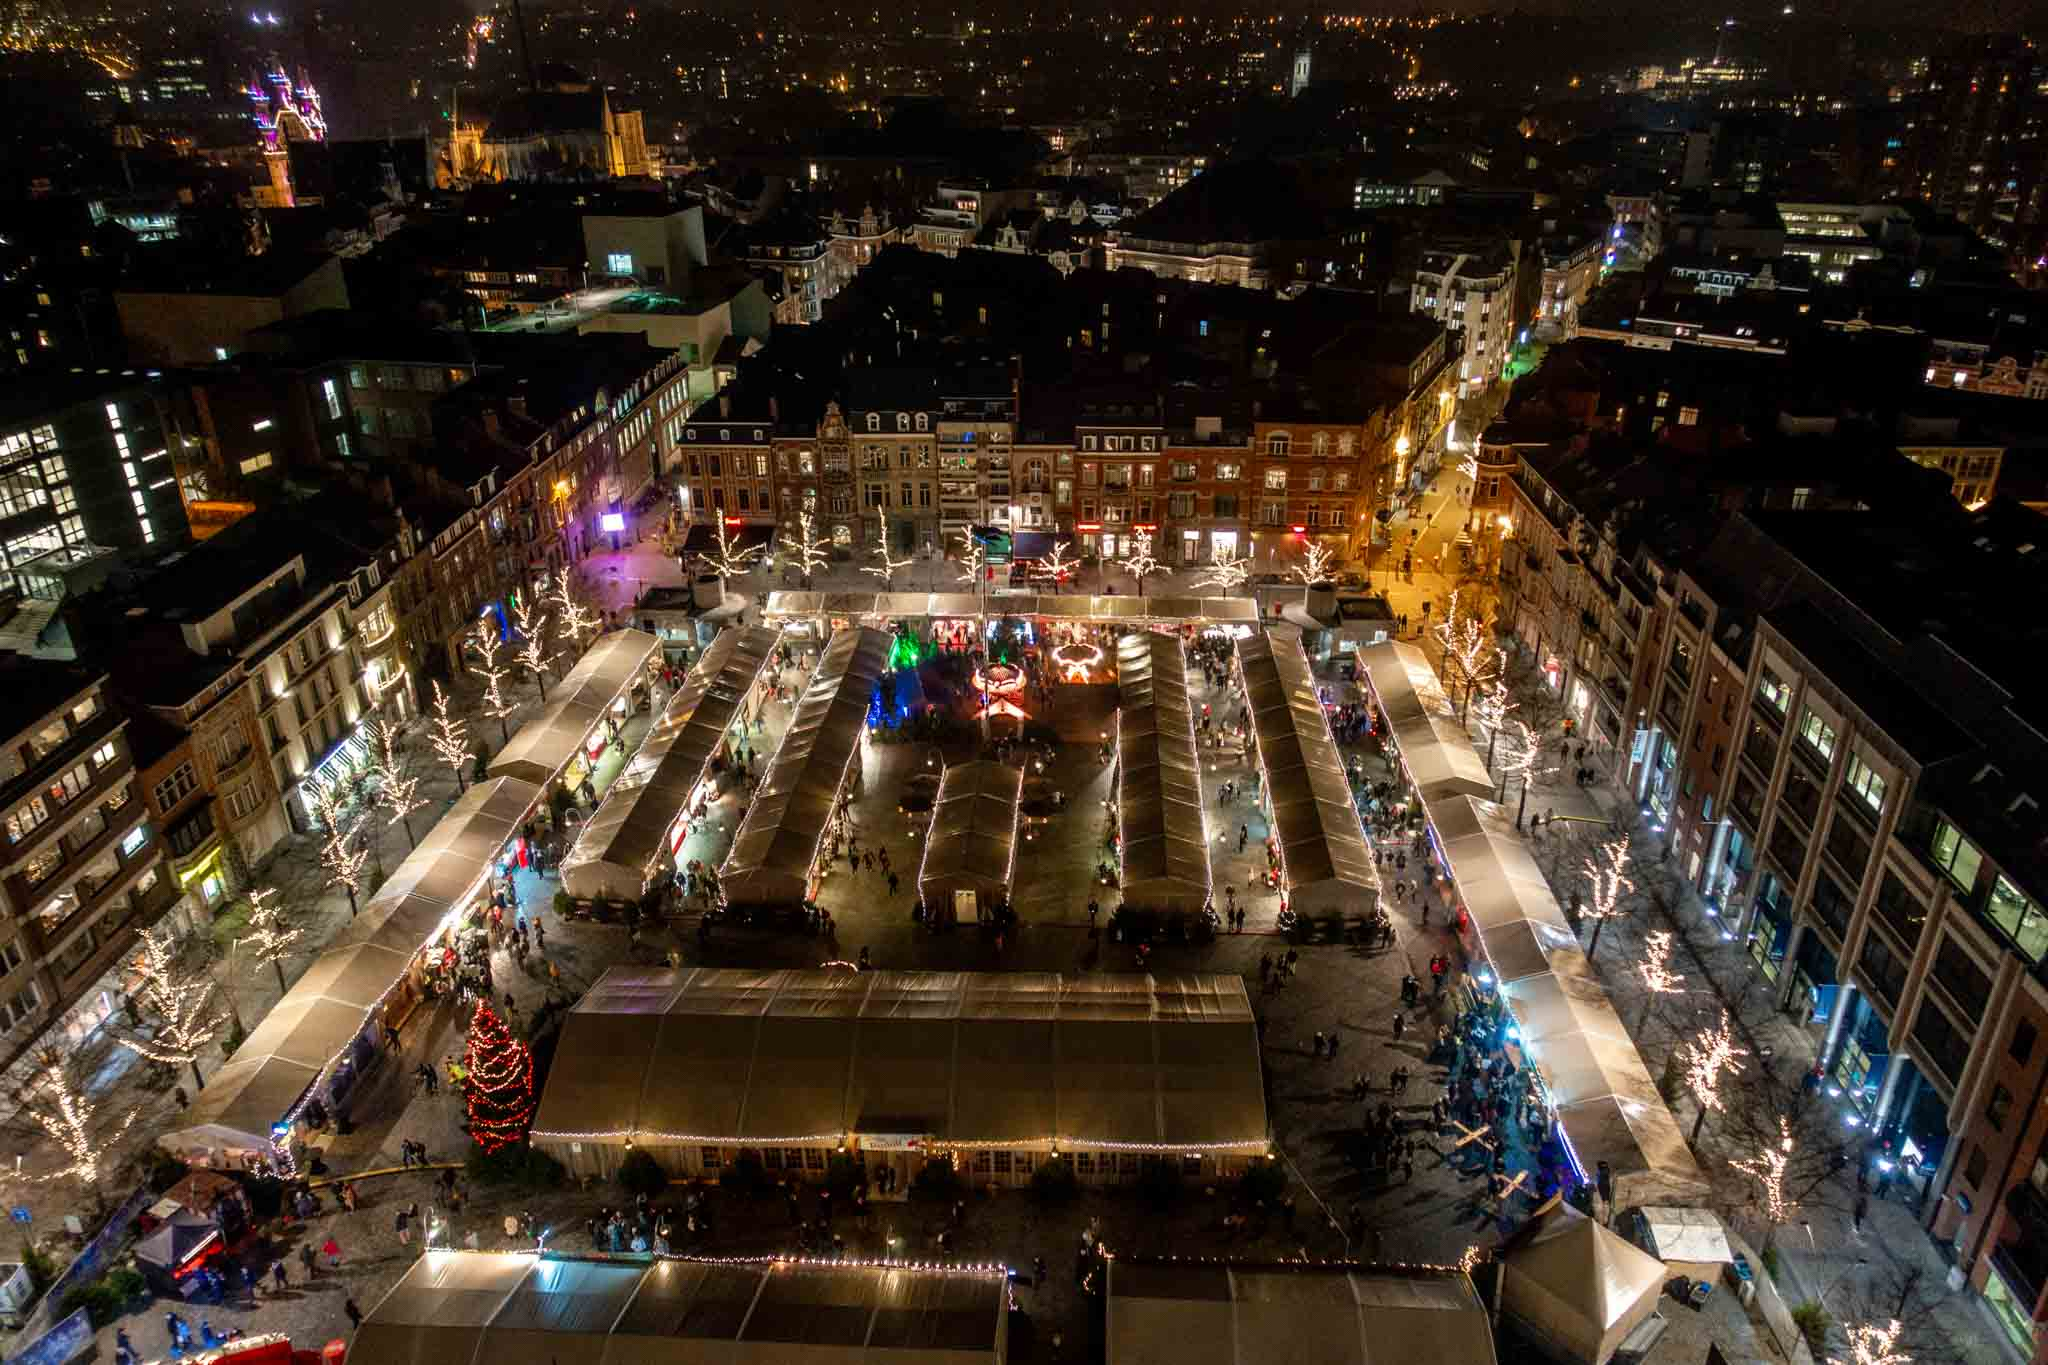 See the Levuen Christmas market from above in the library tower